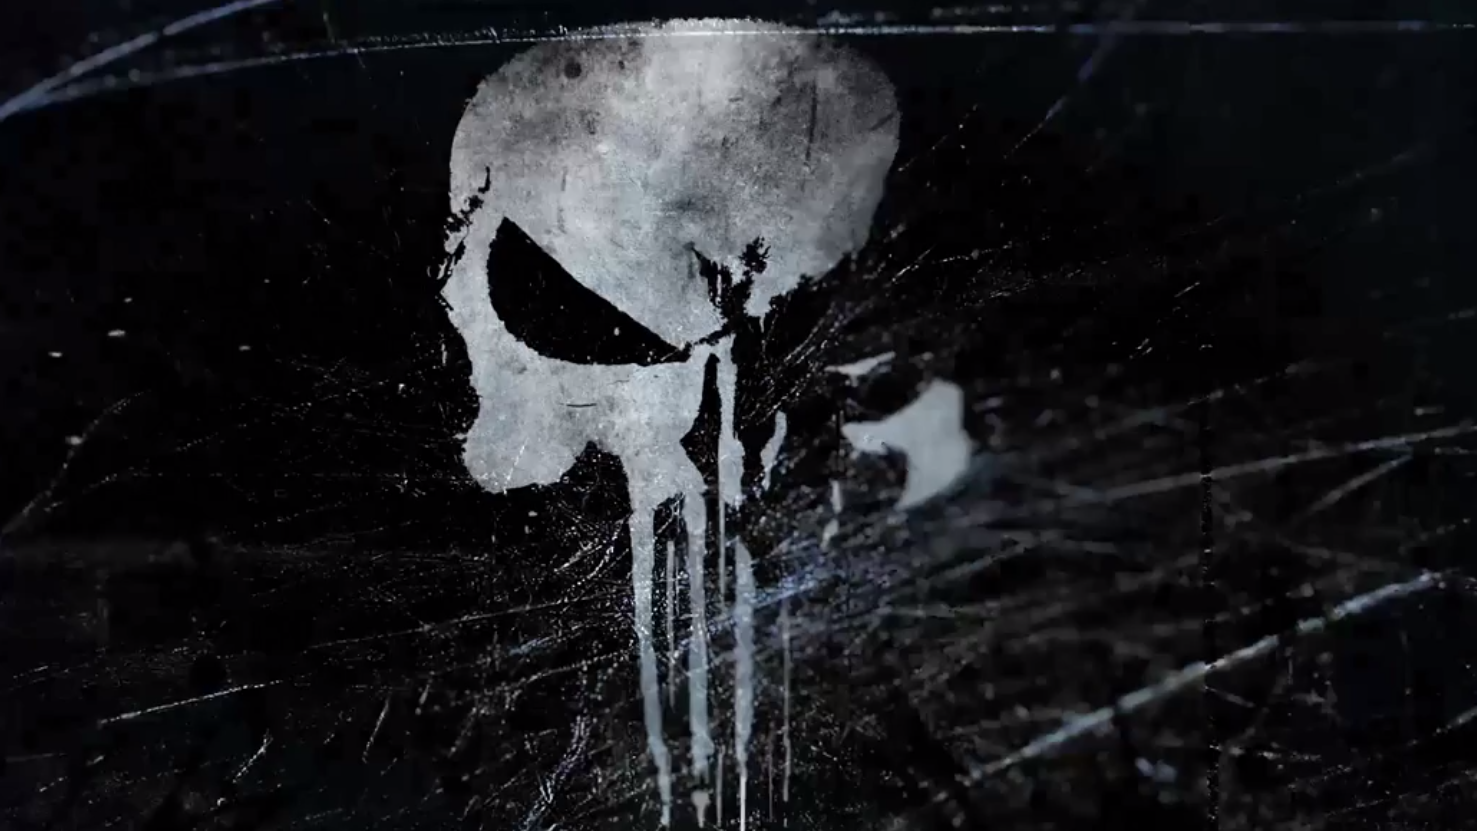 Netflix and Marvel team up once again for The Punisher ...